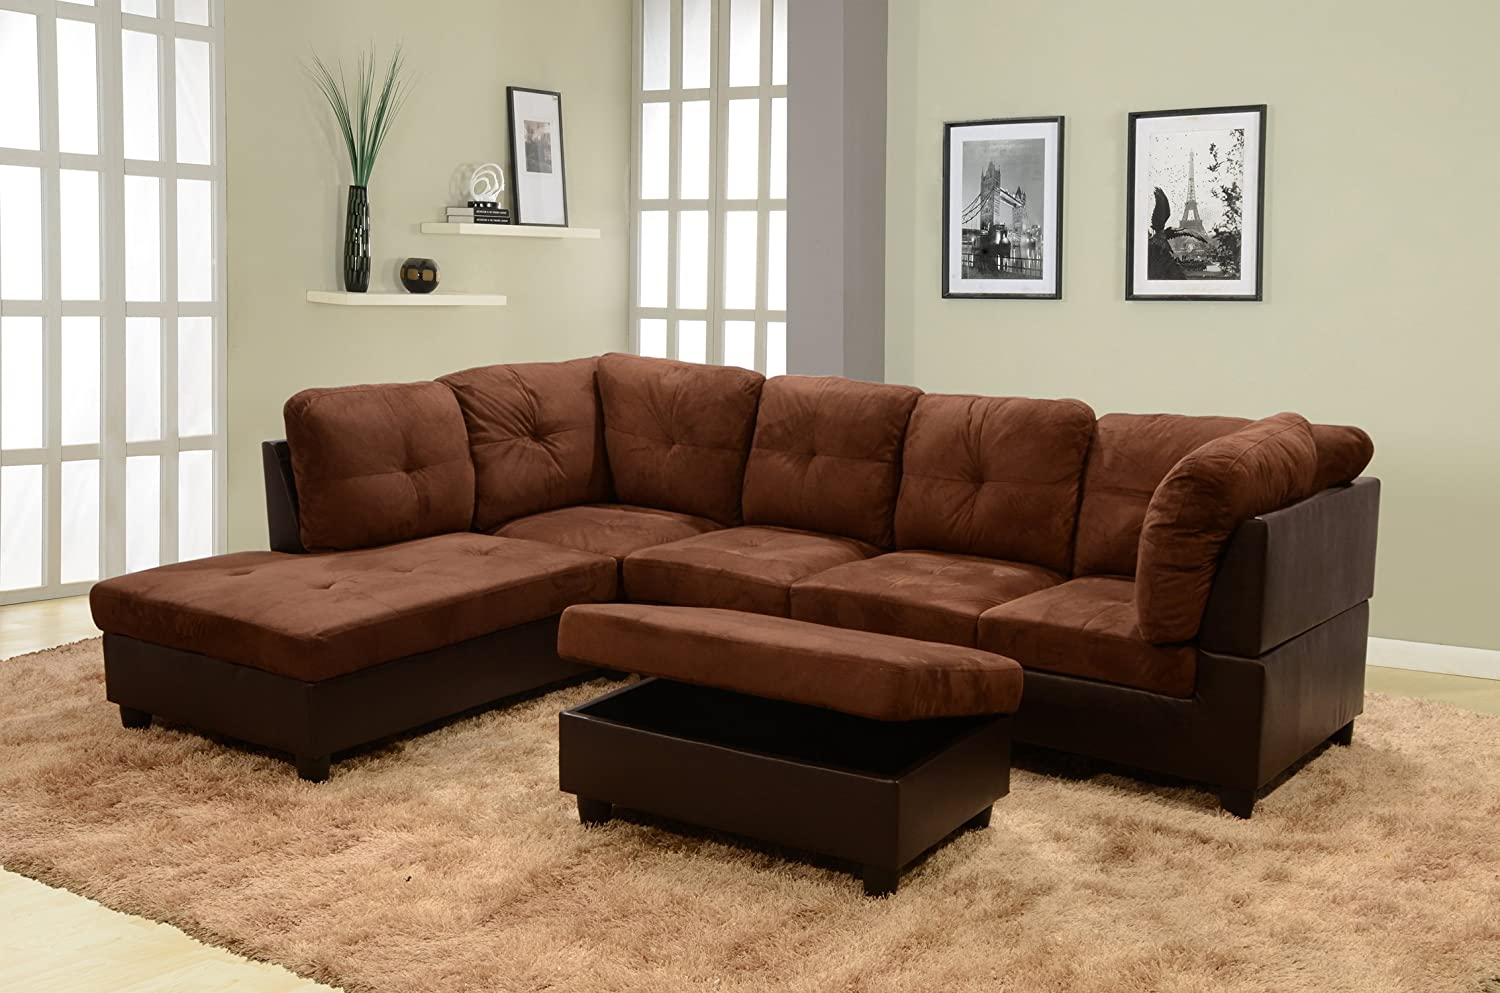 Amazon.com: Lifestyle Coffee 3 Piece Microfiber U0026 Faux Leather Left Facing Sectional  Sofa Set With Free Storage Ottoman: Kitchen U0026 Dining